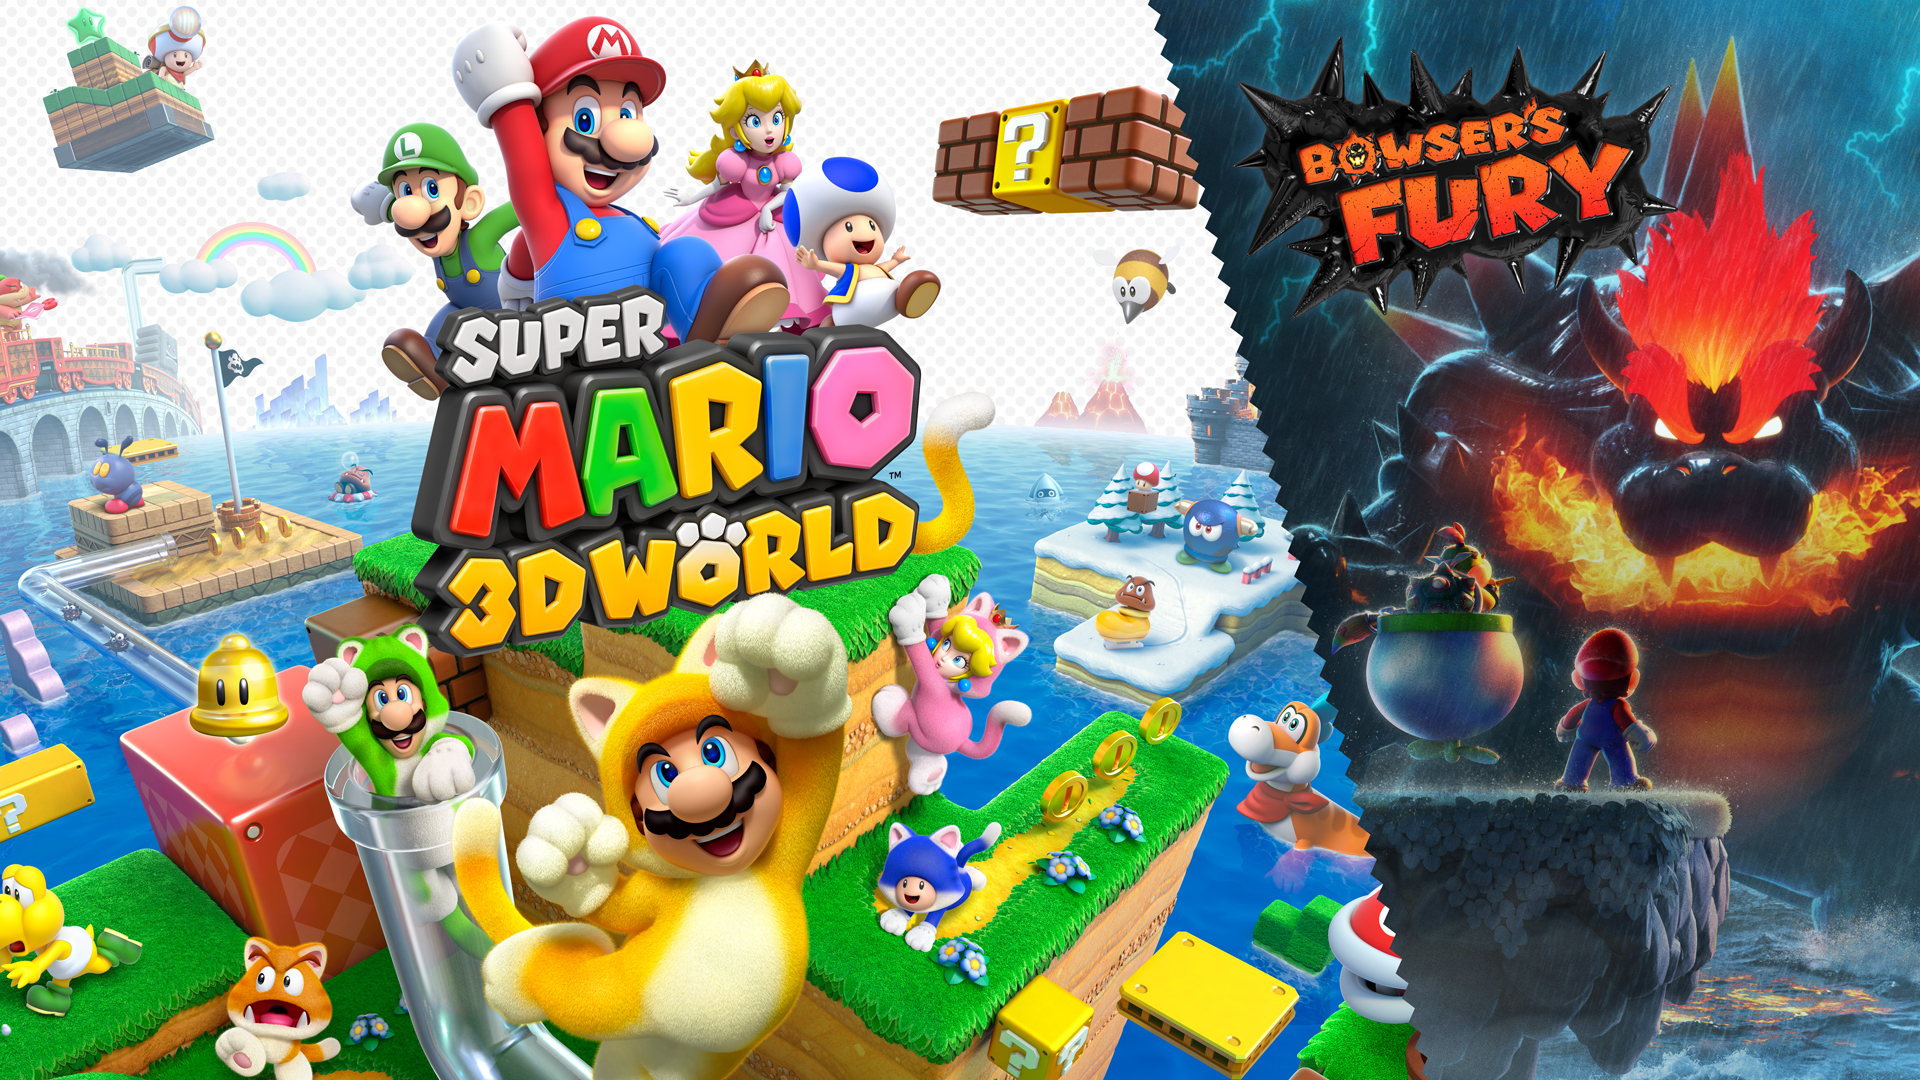 A classic Mario game for the Wii U has been ported to the Nintendo Switch...with some neat extras